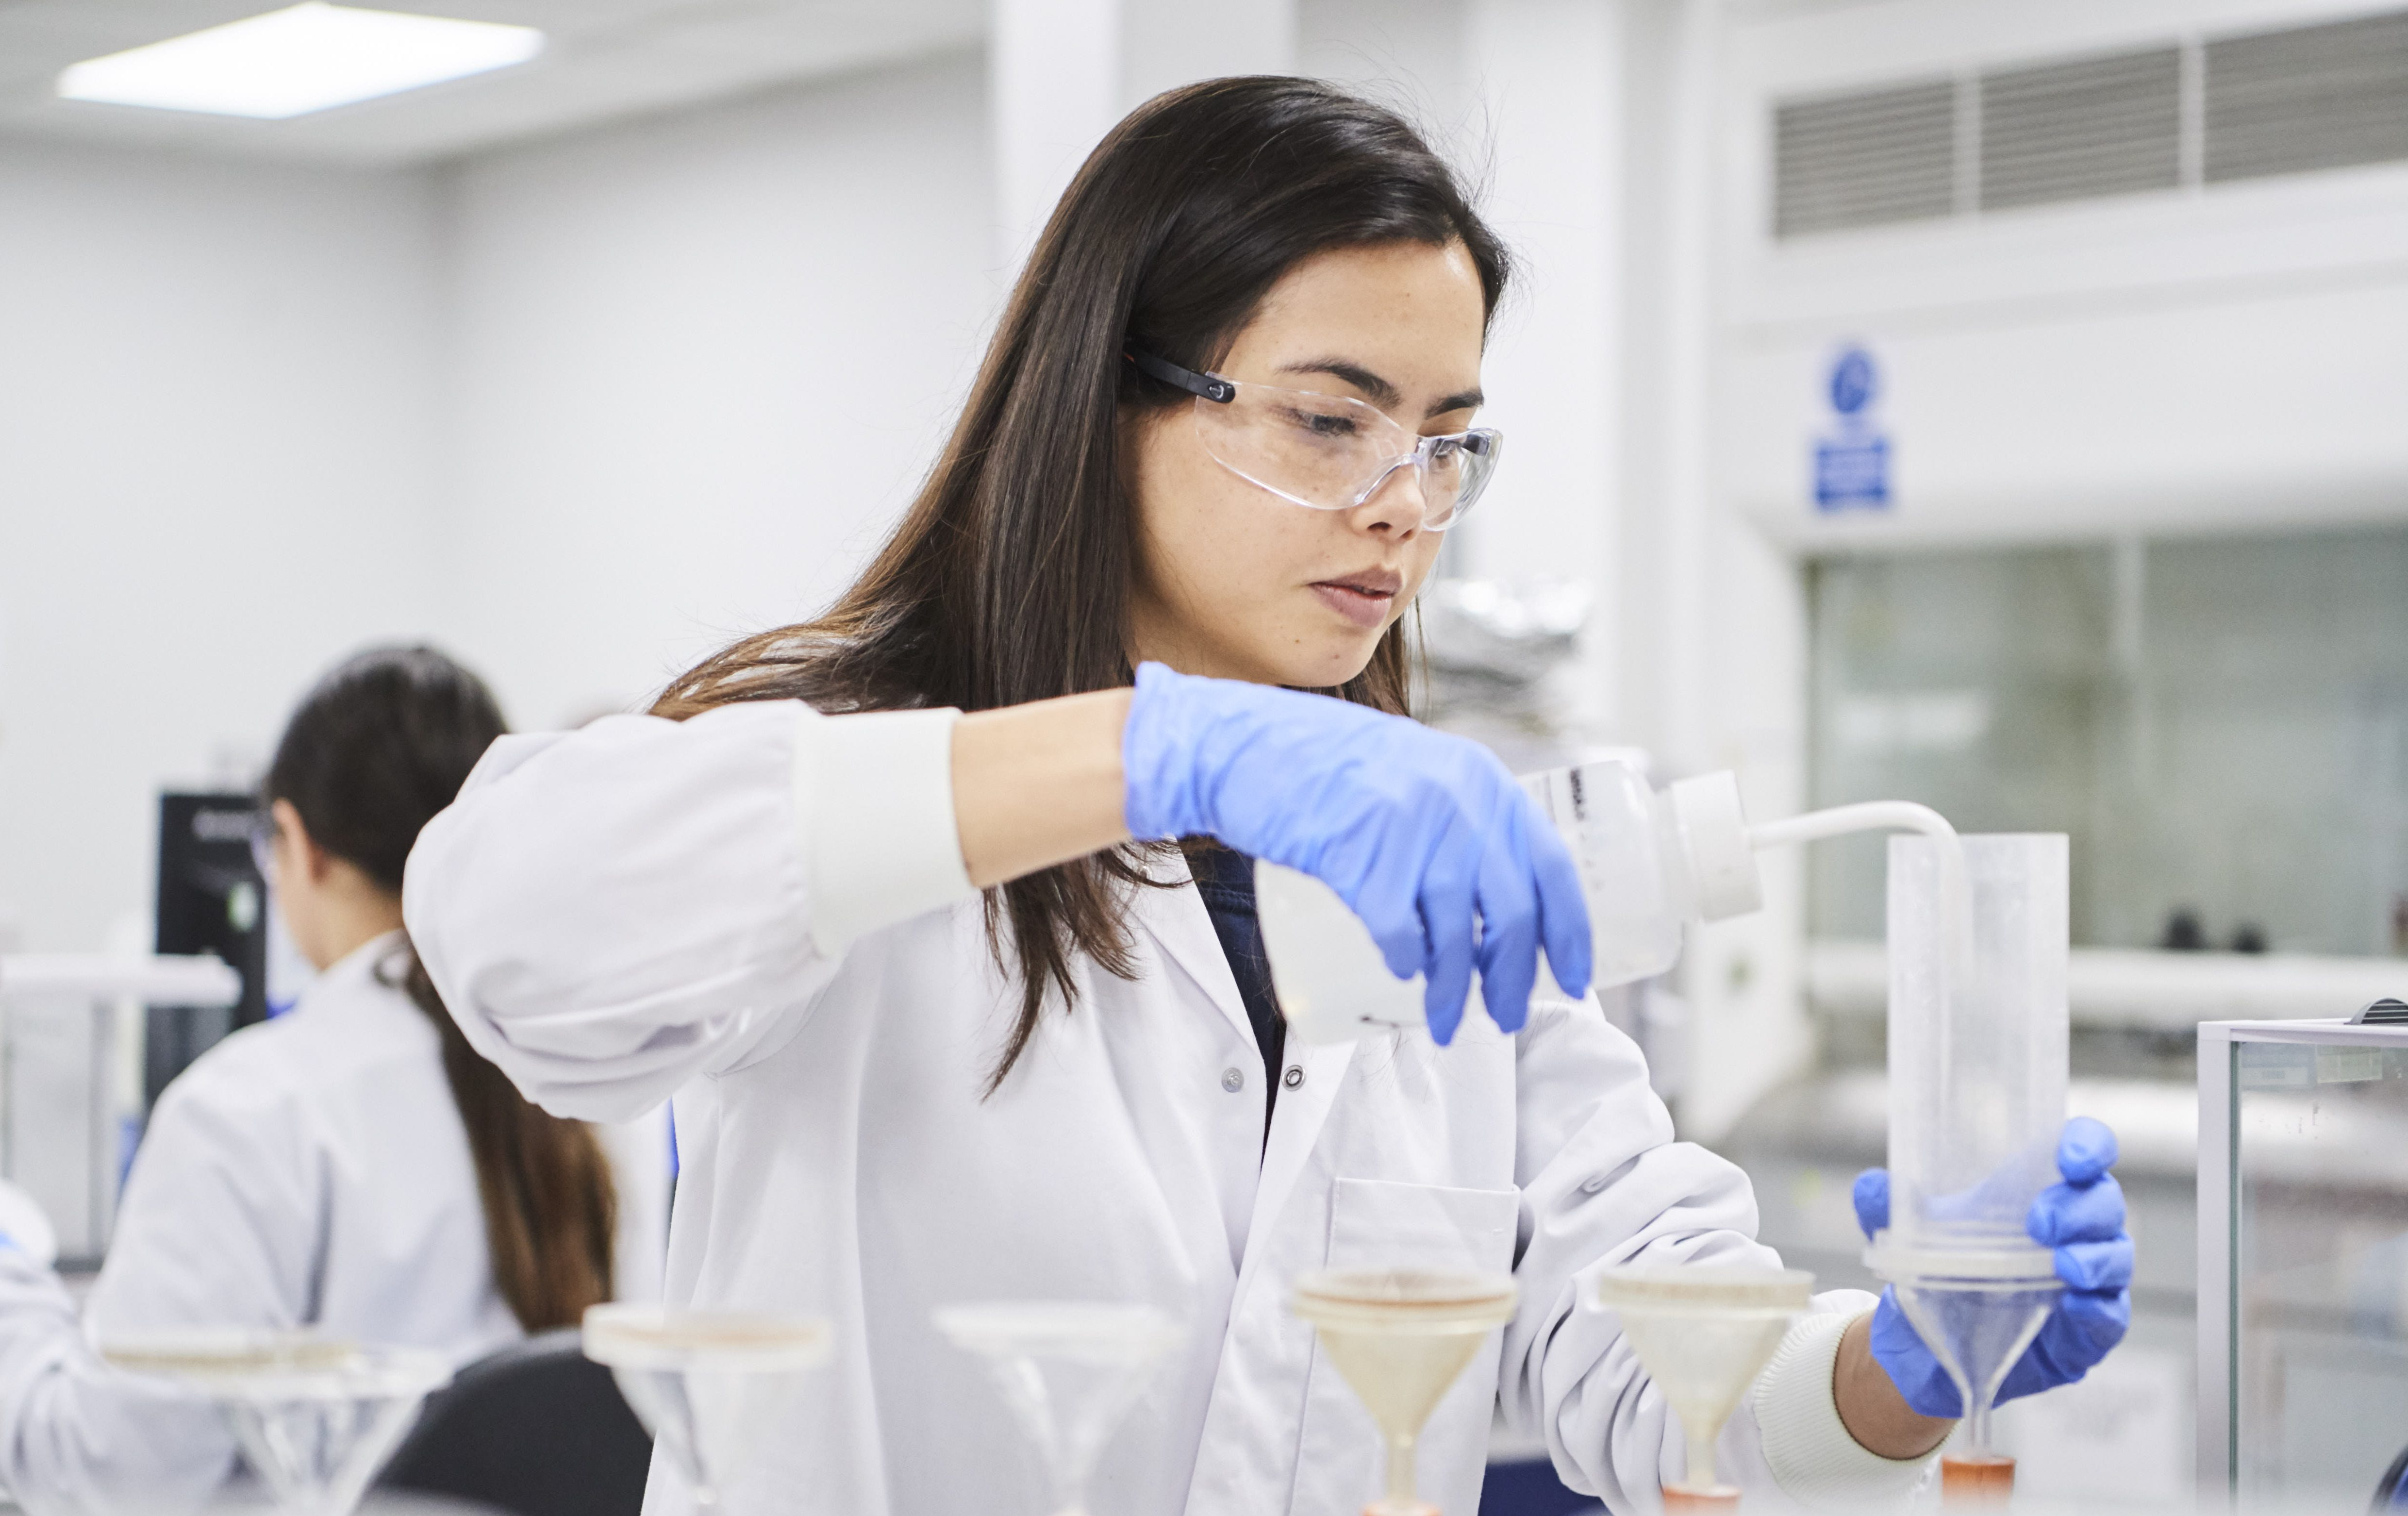 Female in lab environment in lab coat and gloves transferring liquid into a funnel